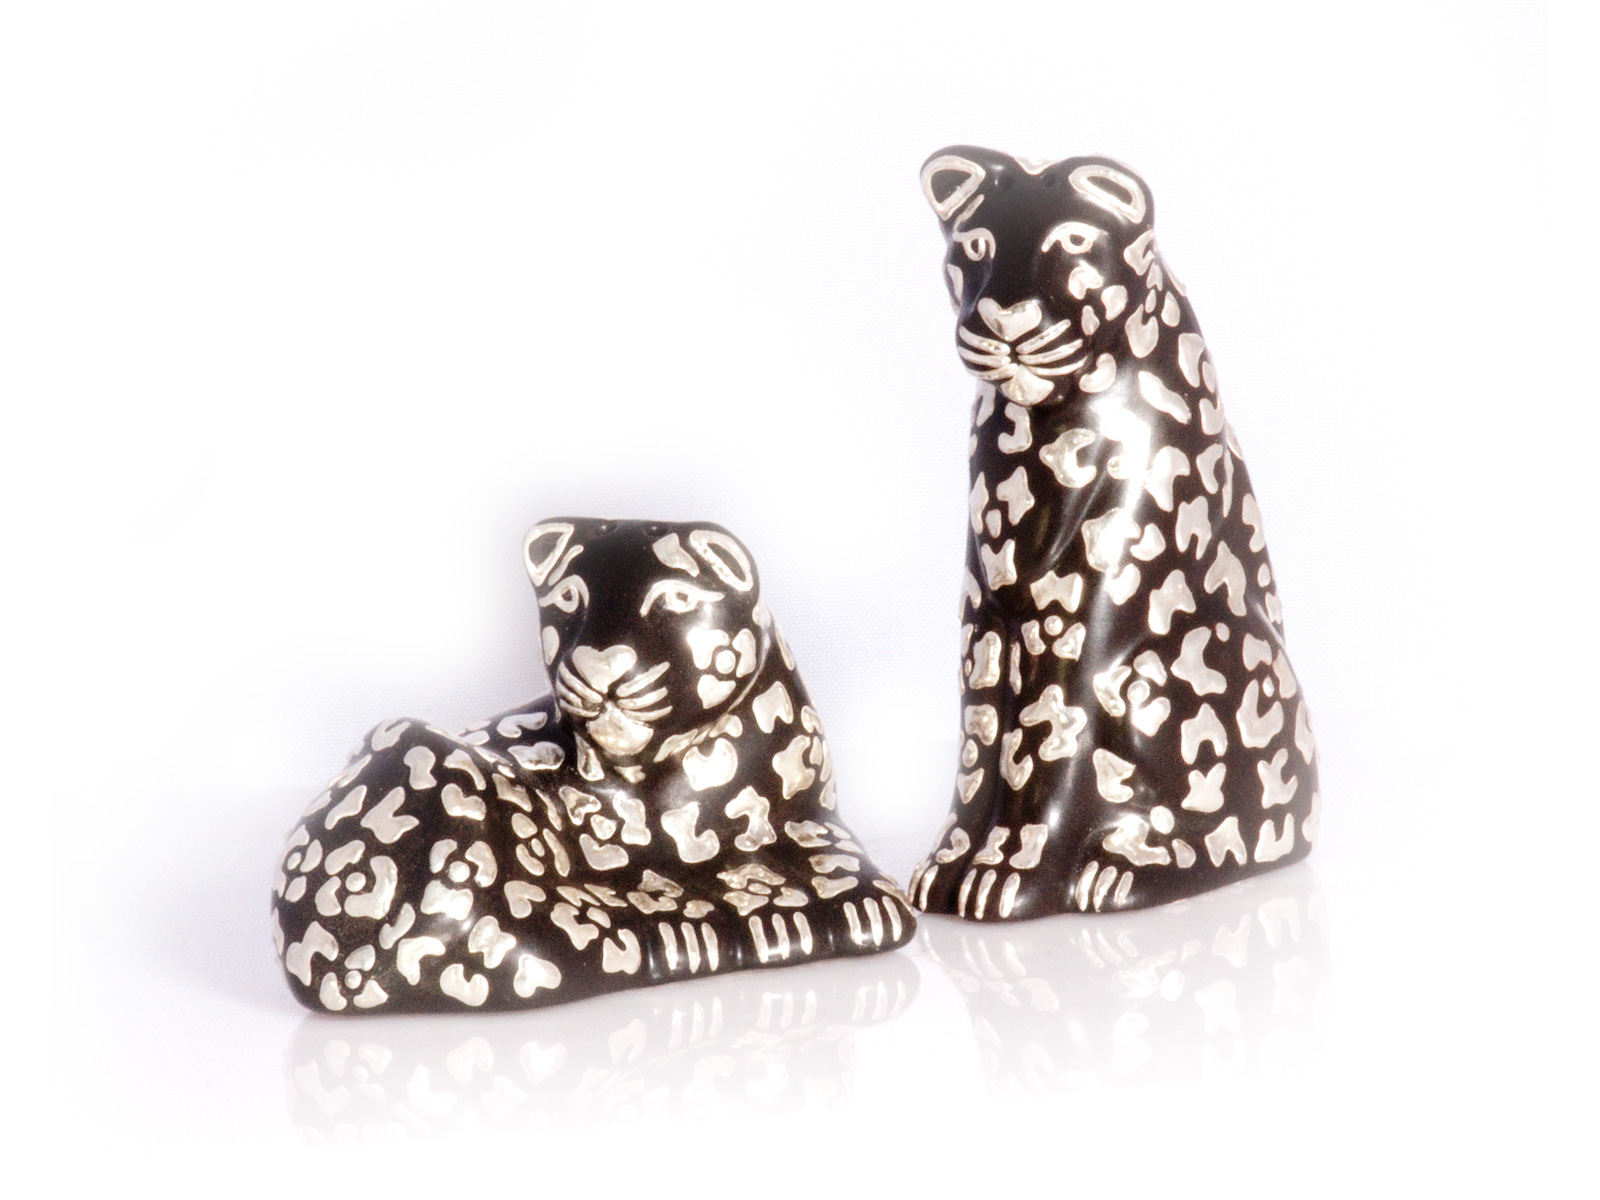 Black Leopard Salt Pepper Shakers